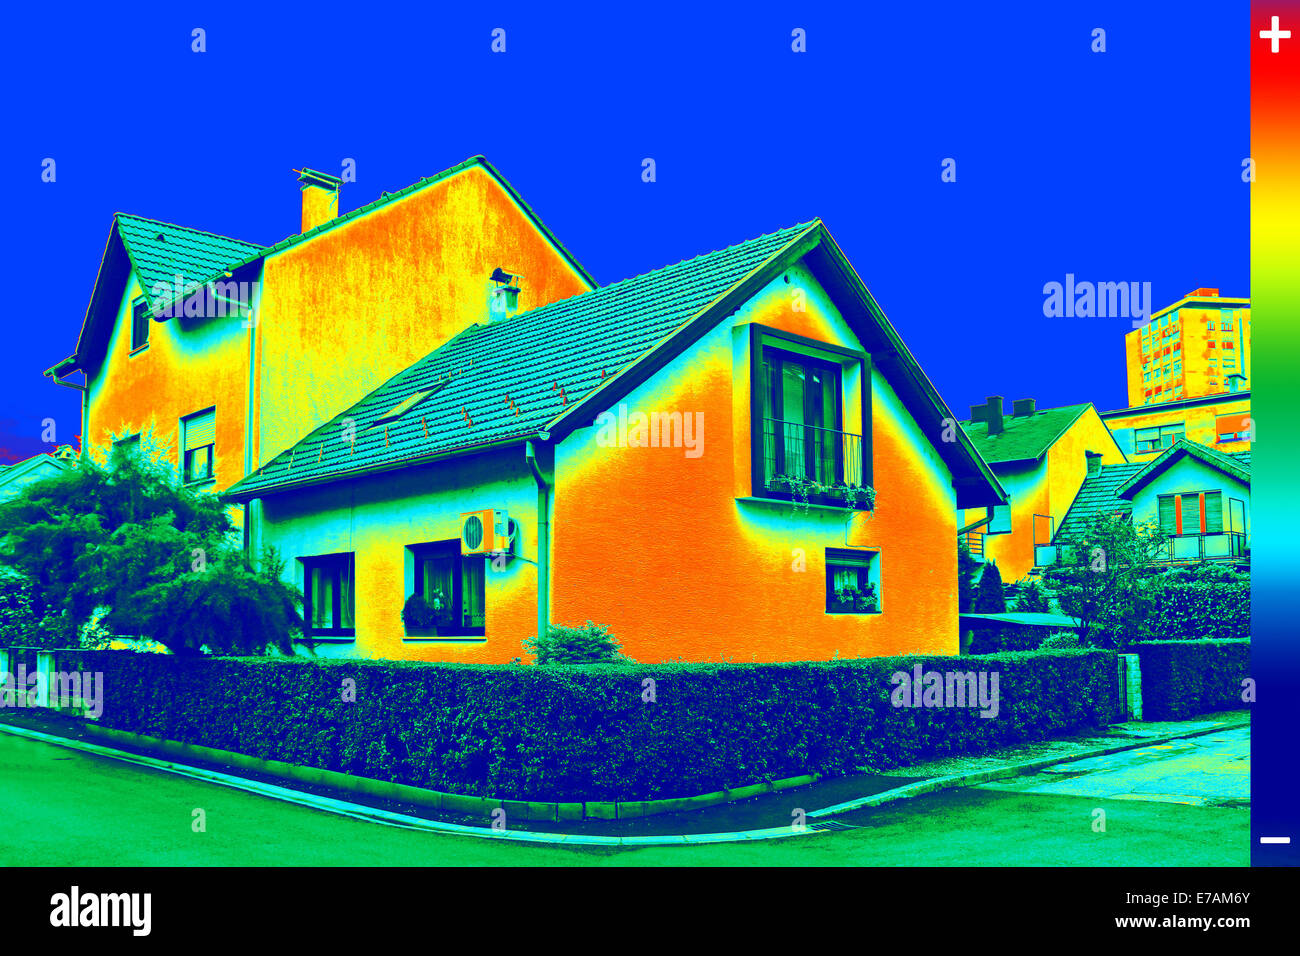 thermography house stockfotos thermography house bilder alamy. Black Bedroom Furniture Sets. Home Design Ideas